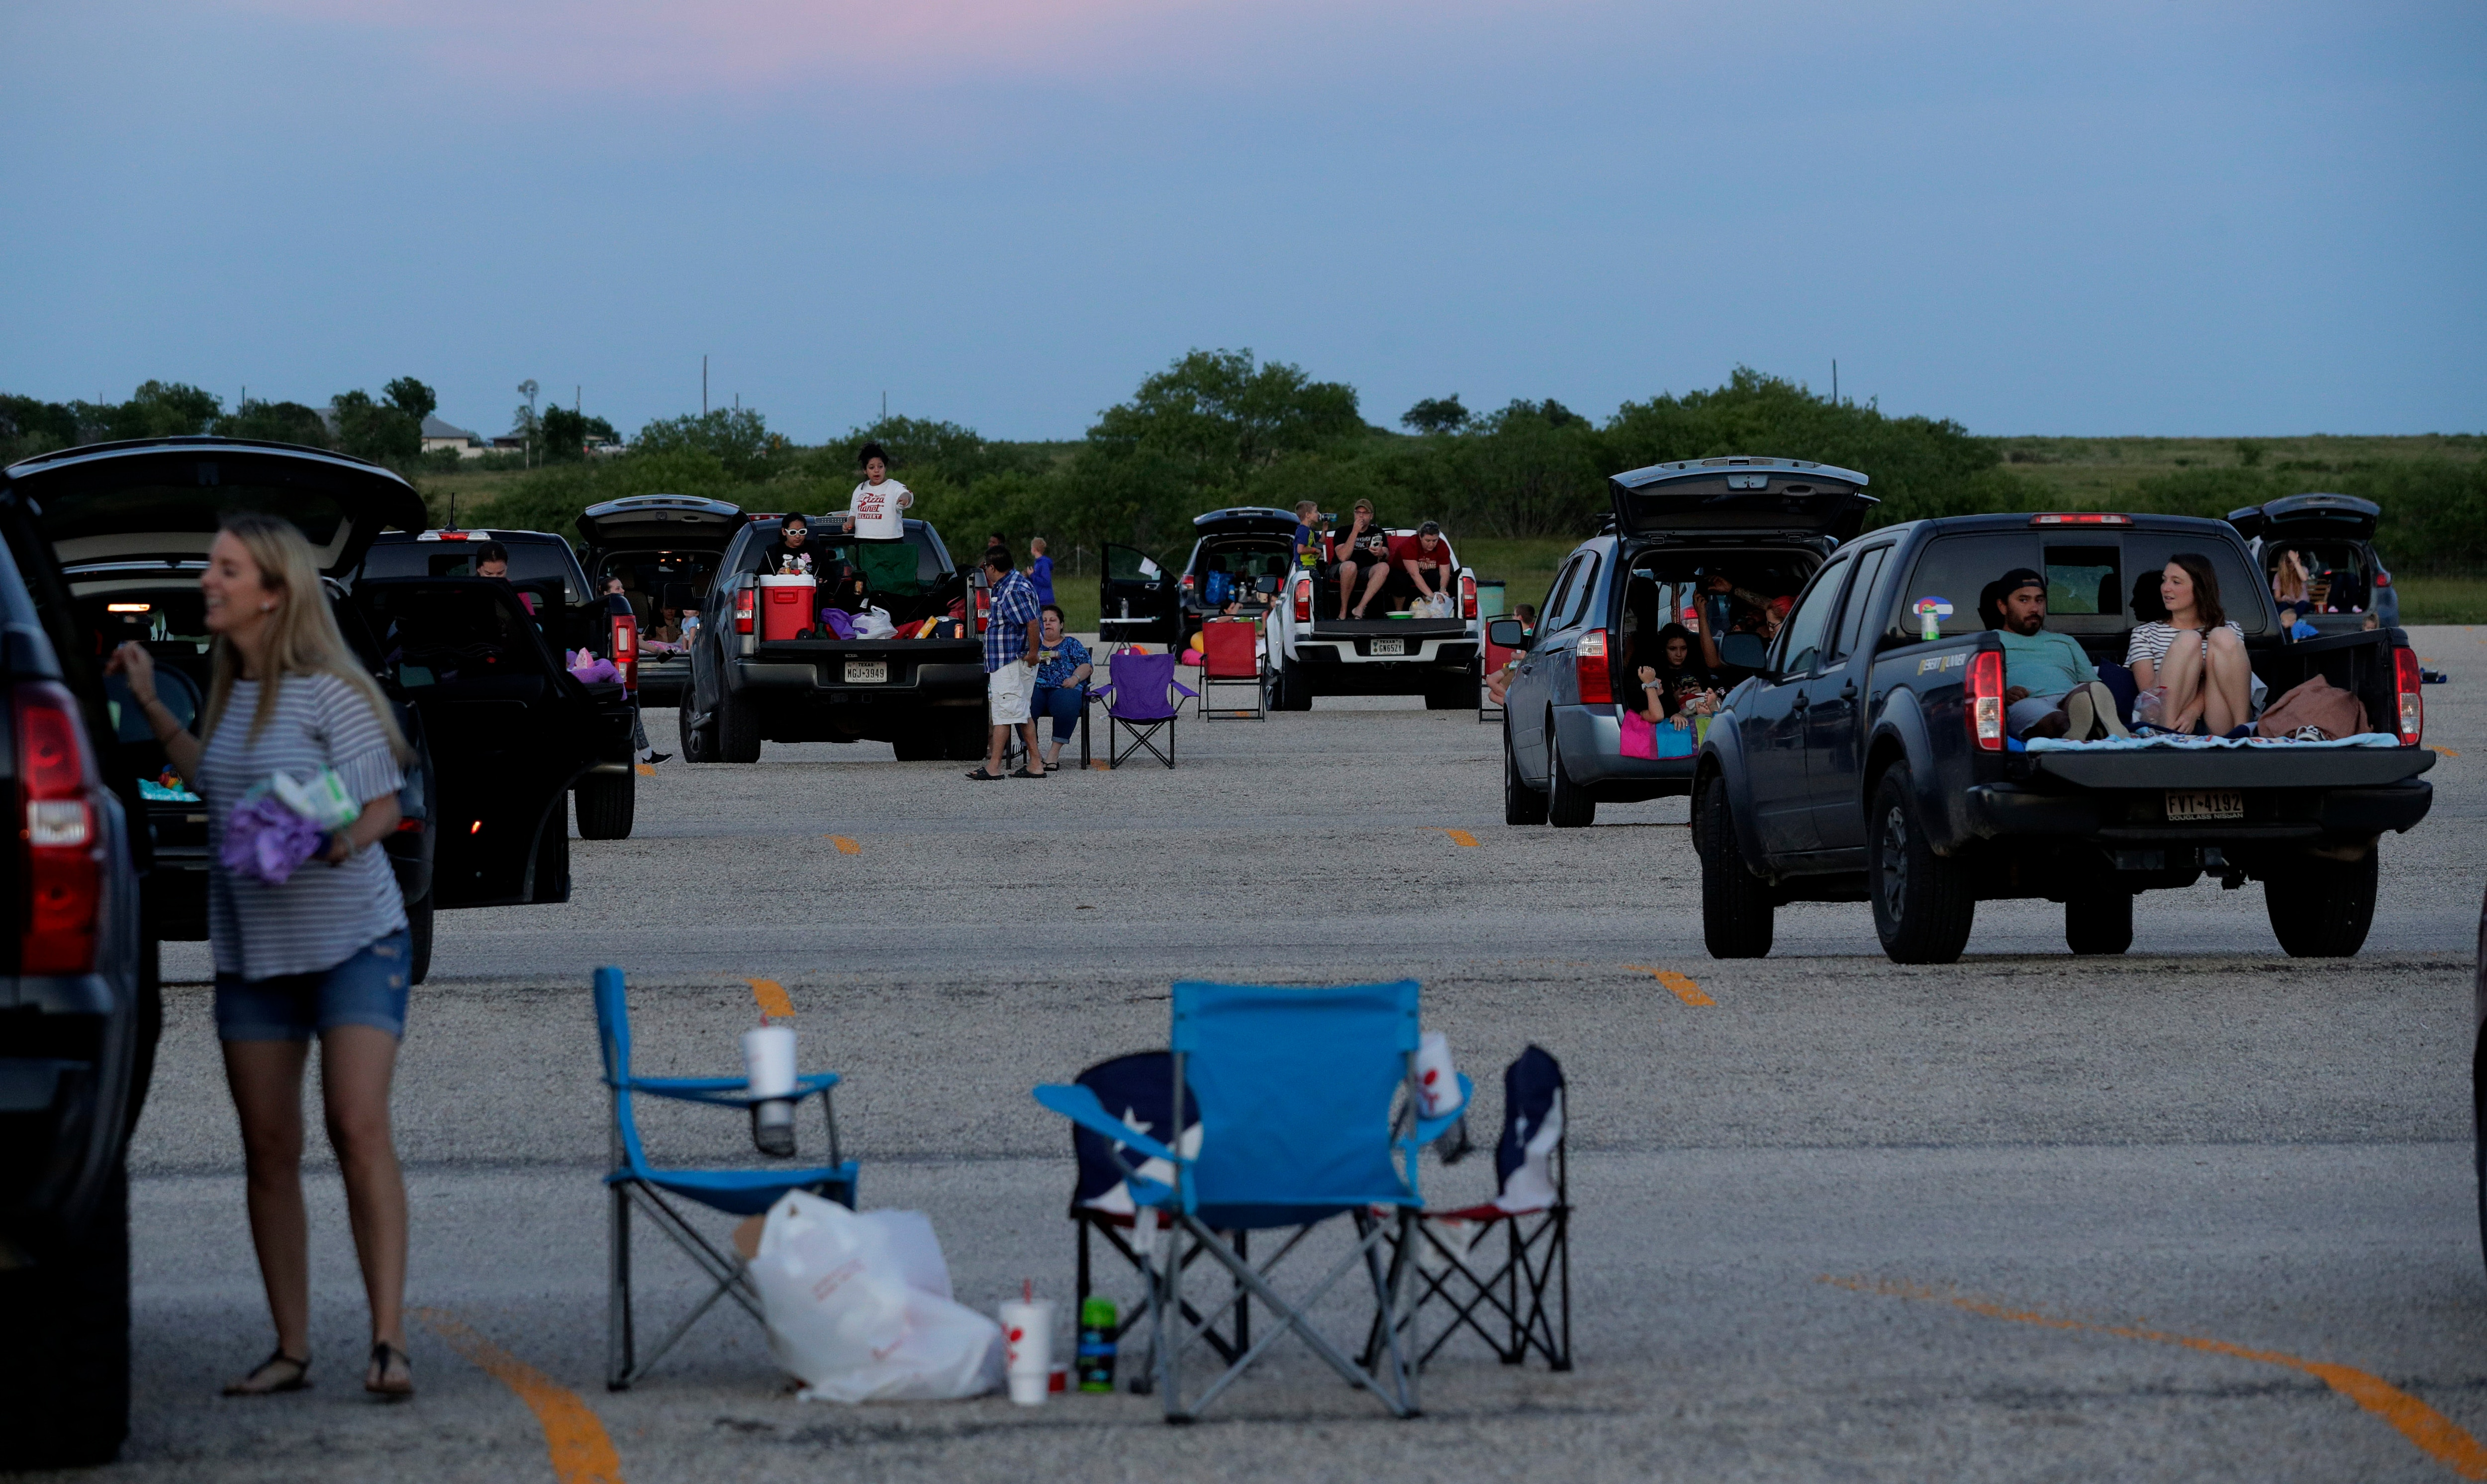 Using social distancing practices, moviegoers arrive at the Stars and Stripes Drive-In Theater in Texas. Families turn the luggage compartment of their cars into a comfortable sitting area while waiting for the movie to start.